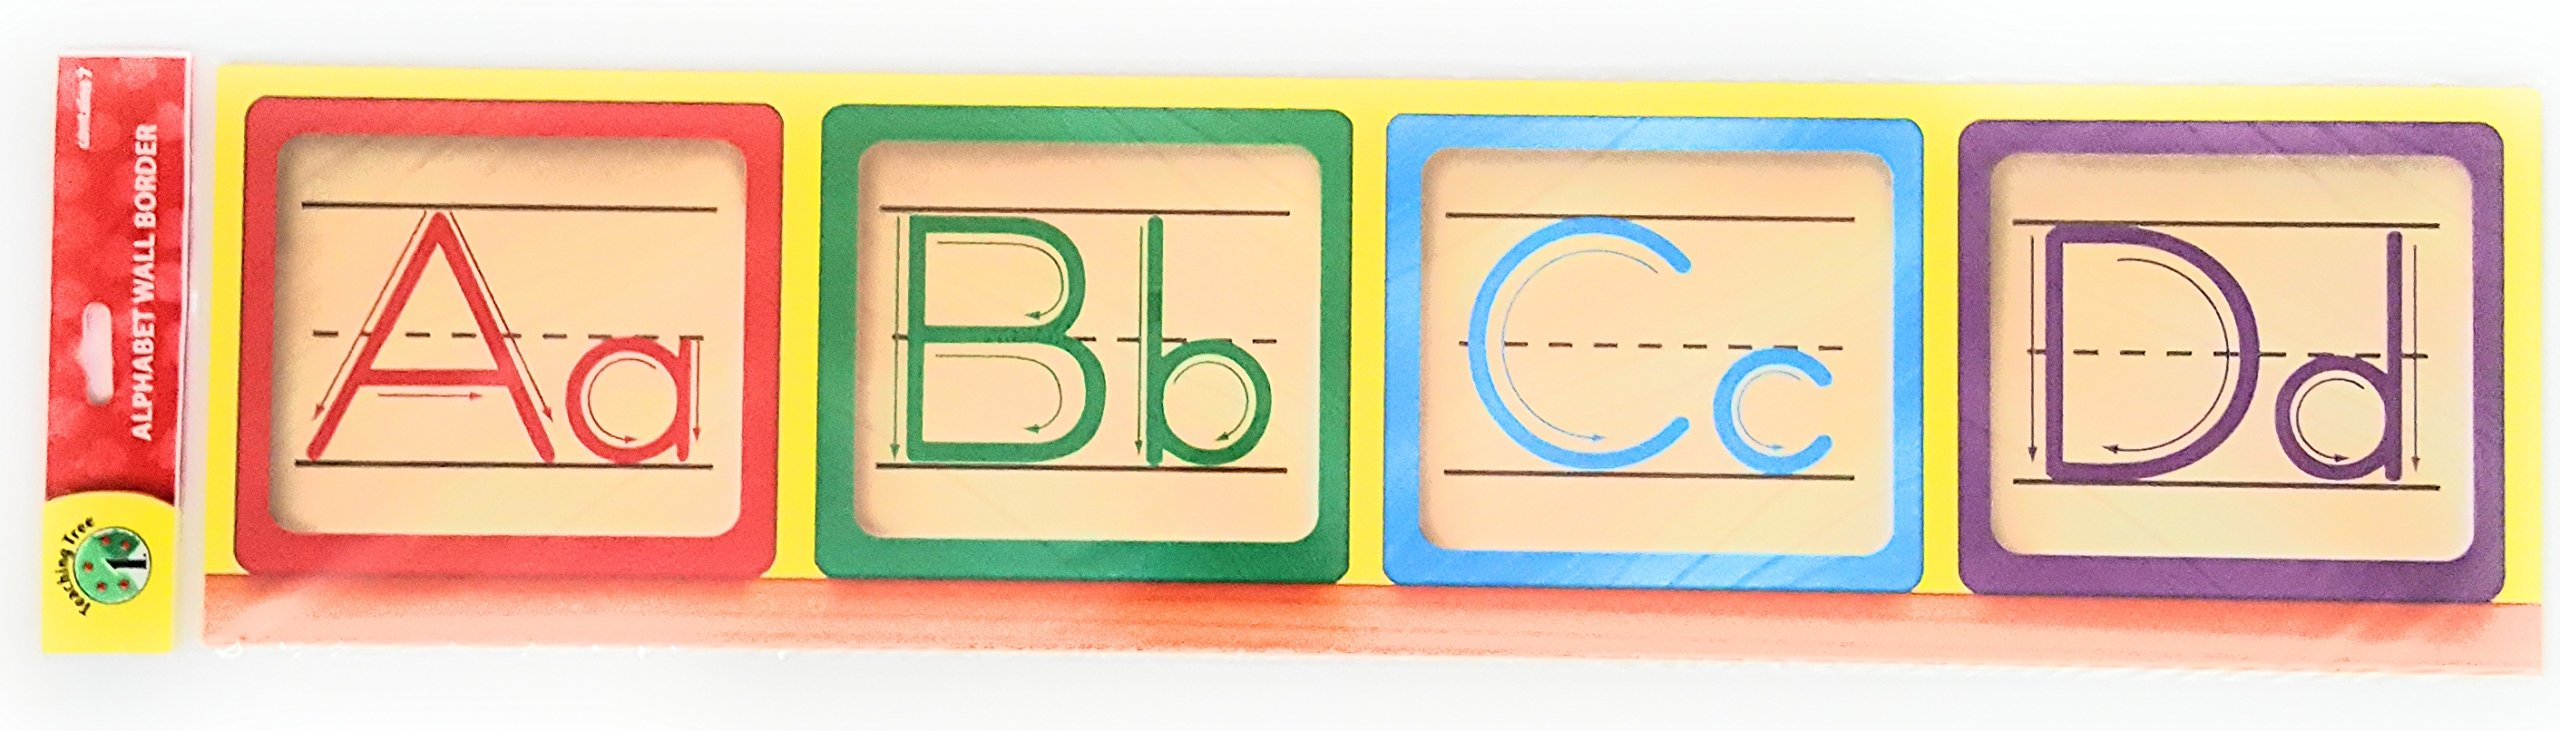 Teaching Tree Manuscript Alphabet Bulletin Back to School Board Creative Strips School Office Resources Scholastic Teacher Teacher's Bulletin Trim Wall Border Decal Classroom Decoration Blocks